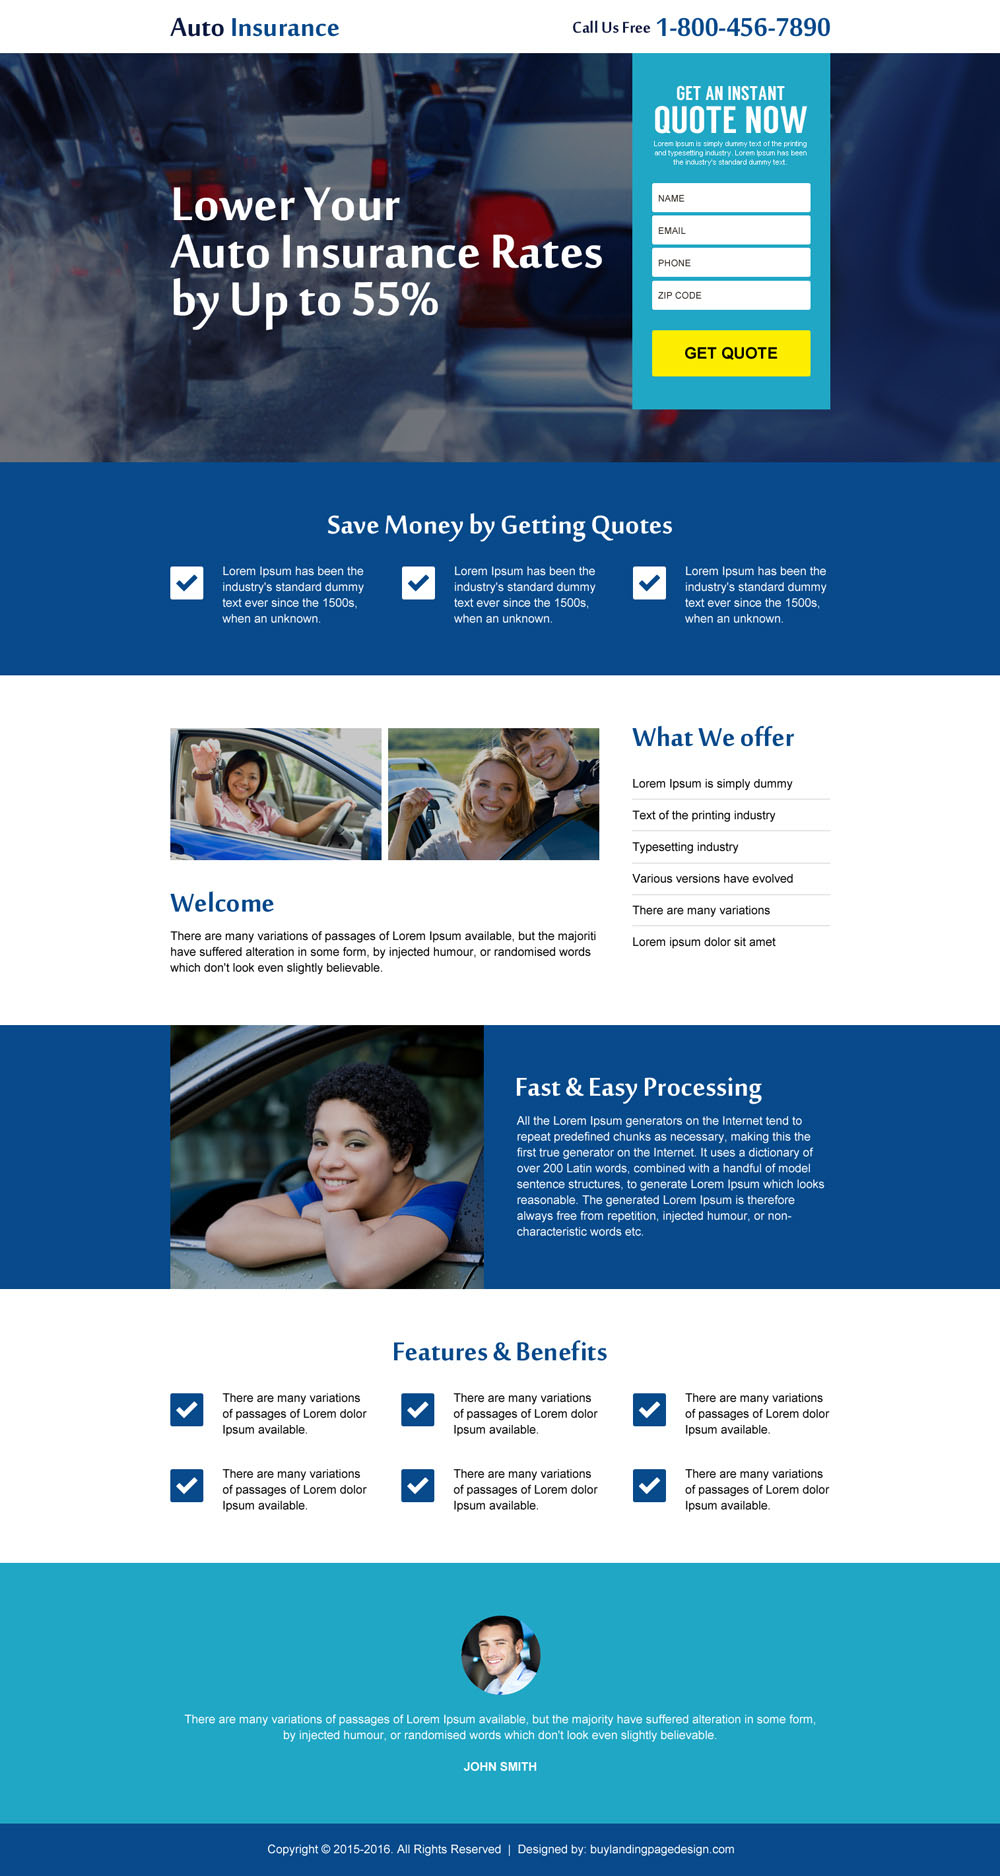 auto-insurance-instant-quote-lead-generating-converting-landing-page-design-043